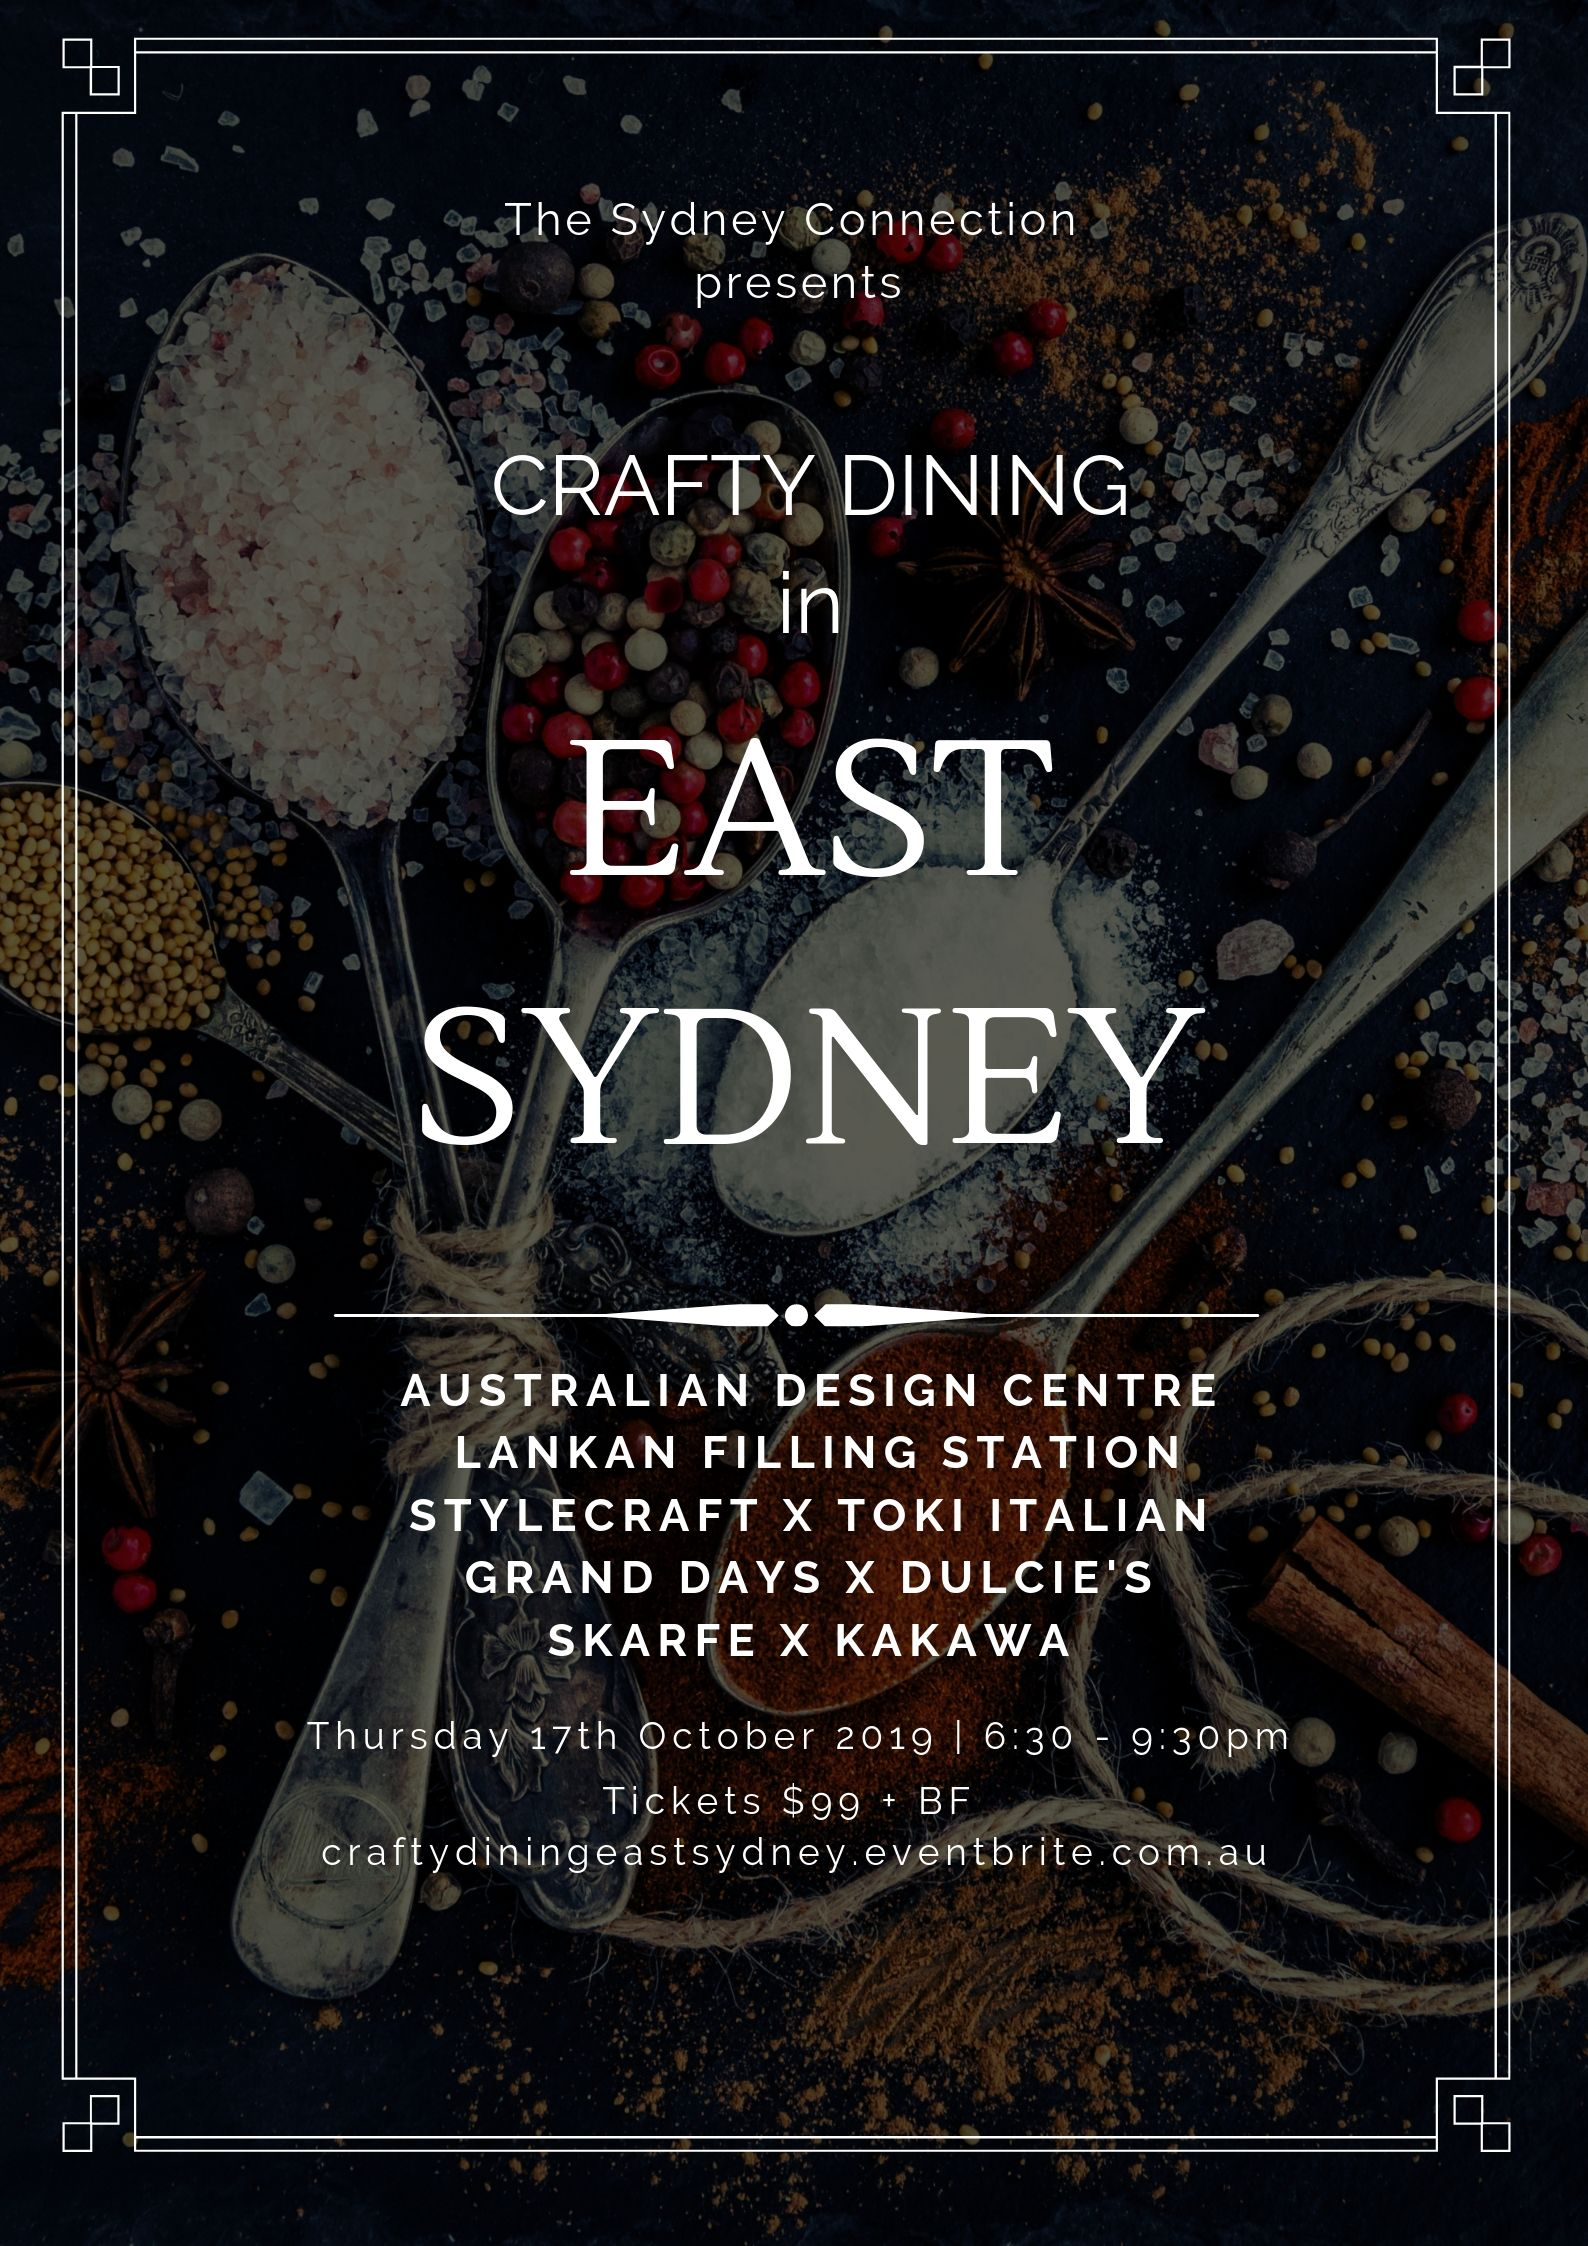 Poster for Crafty Dining East Sydney